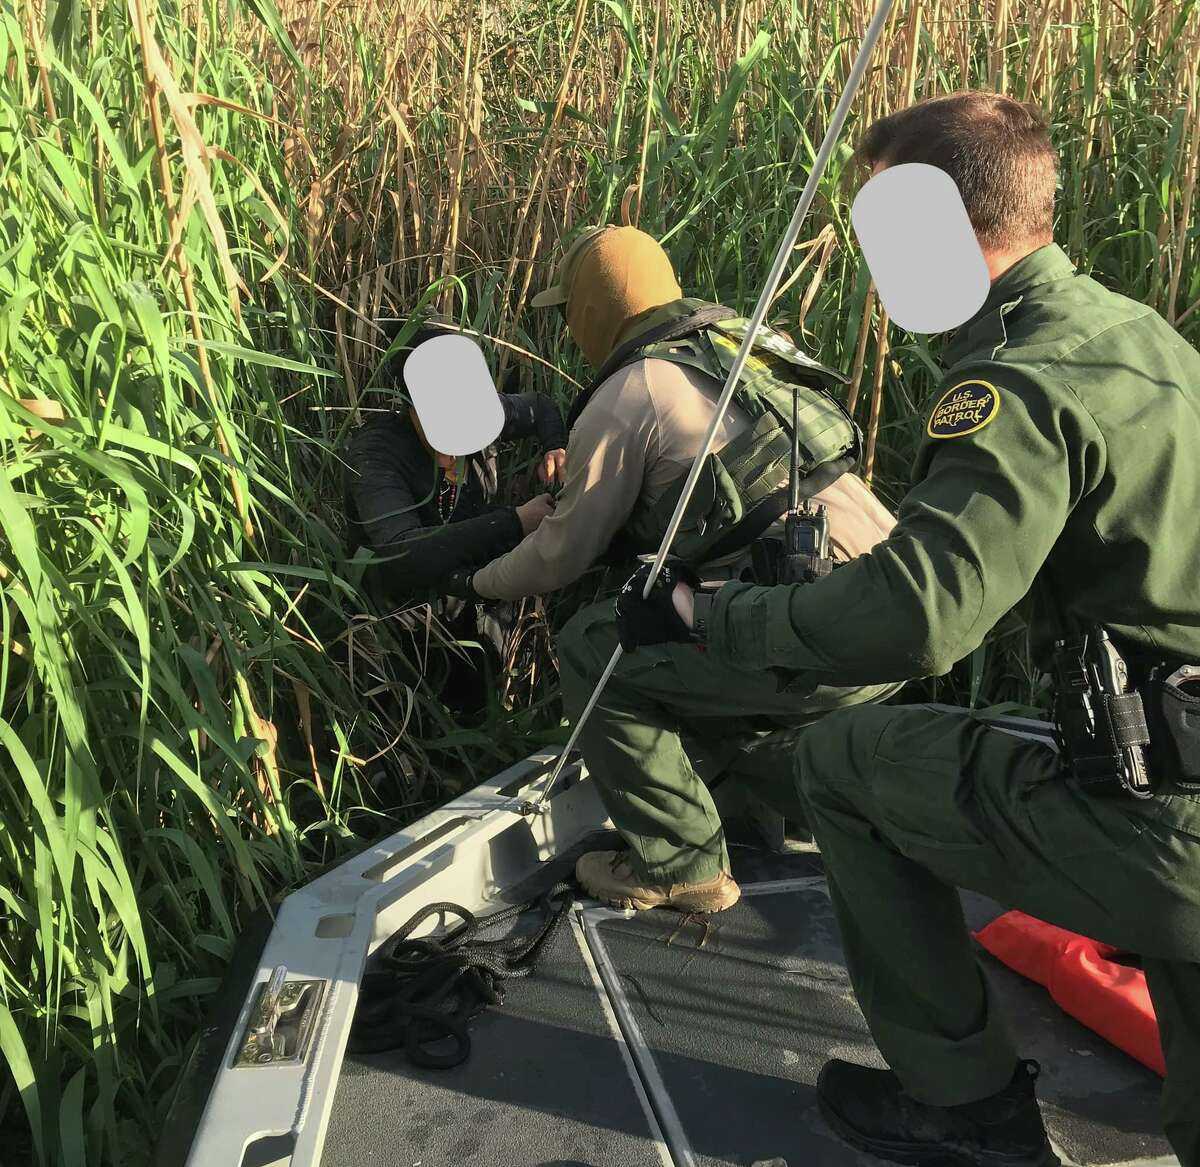 Laredo Sector Marine Unit agents rescued four individuals stranded on an island in the middle of the river. Over the weekend, agents rescued 20 people from Laredo's harsh conditions.